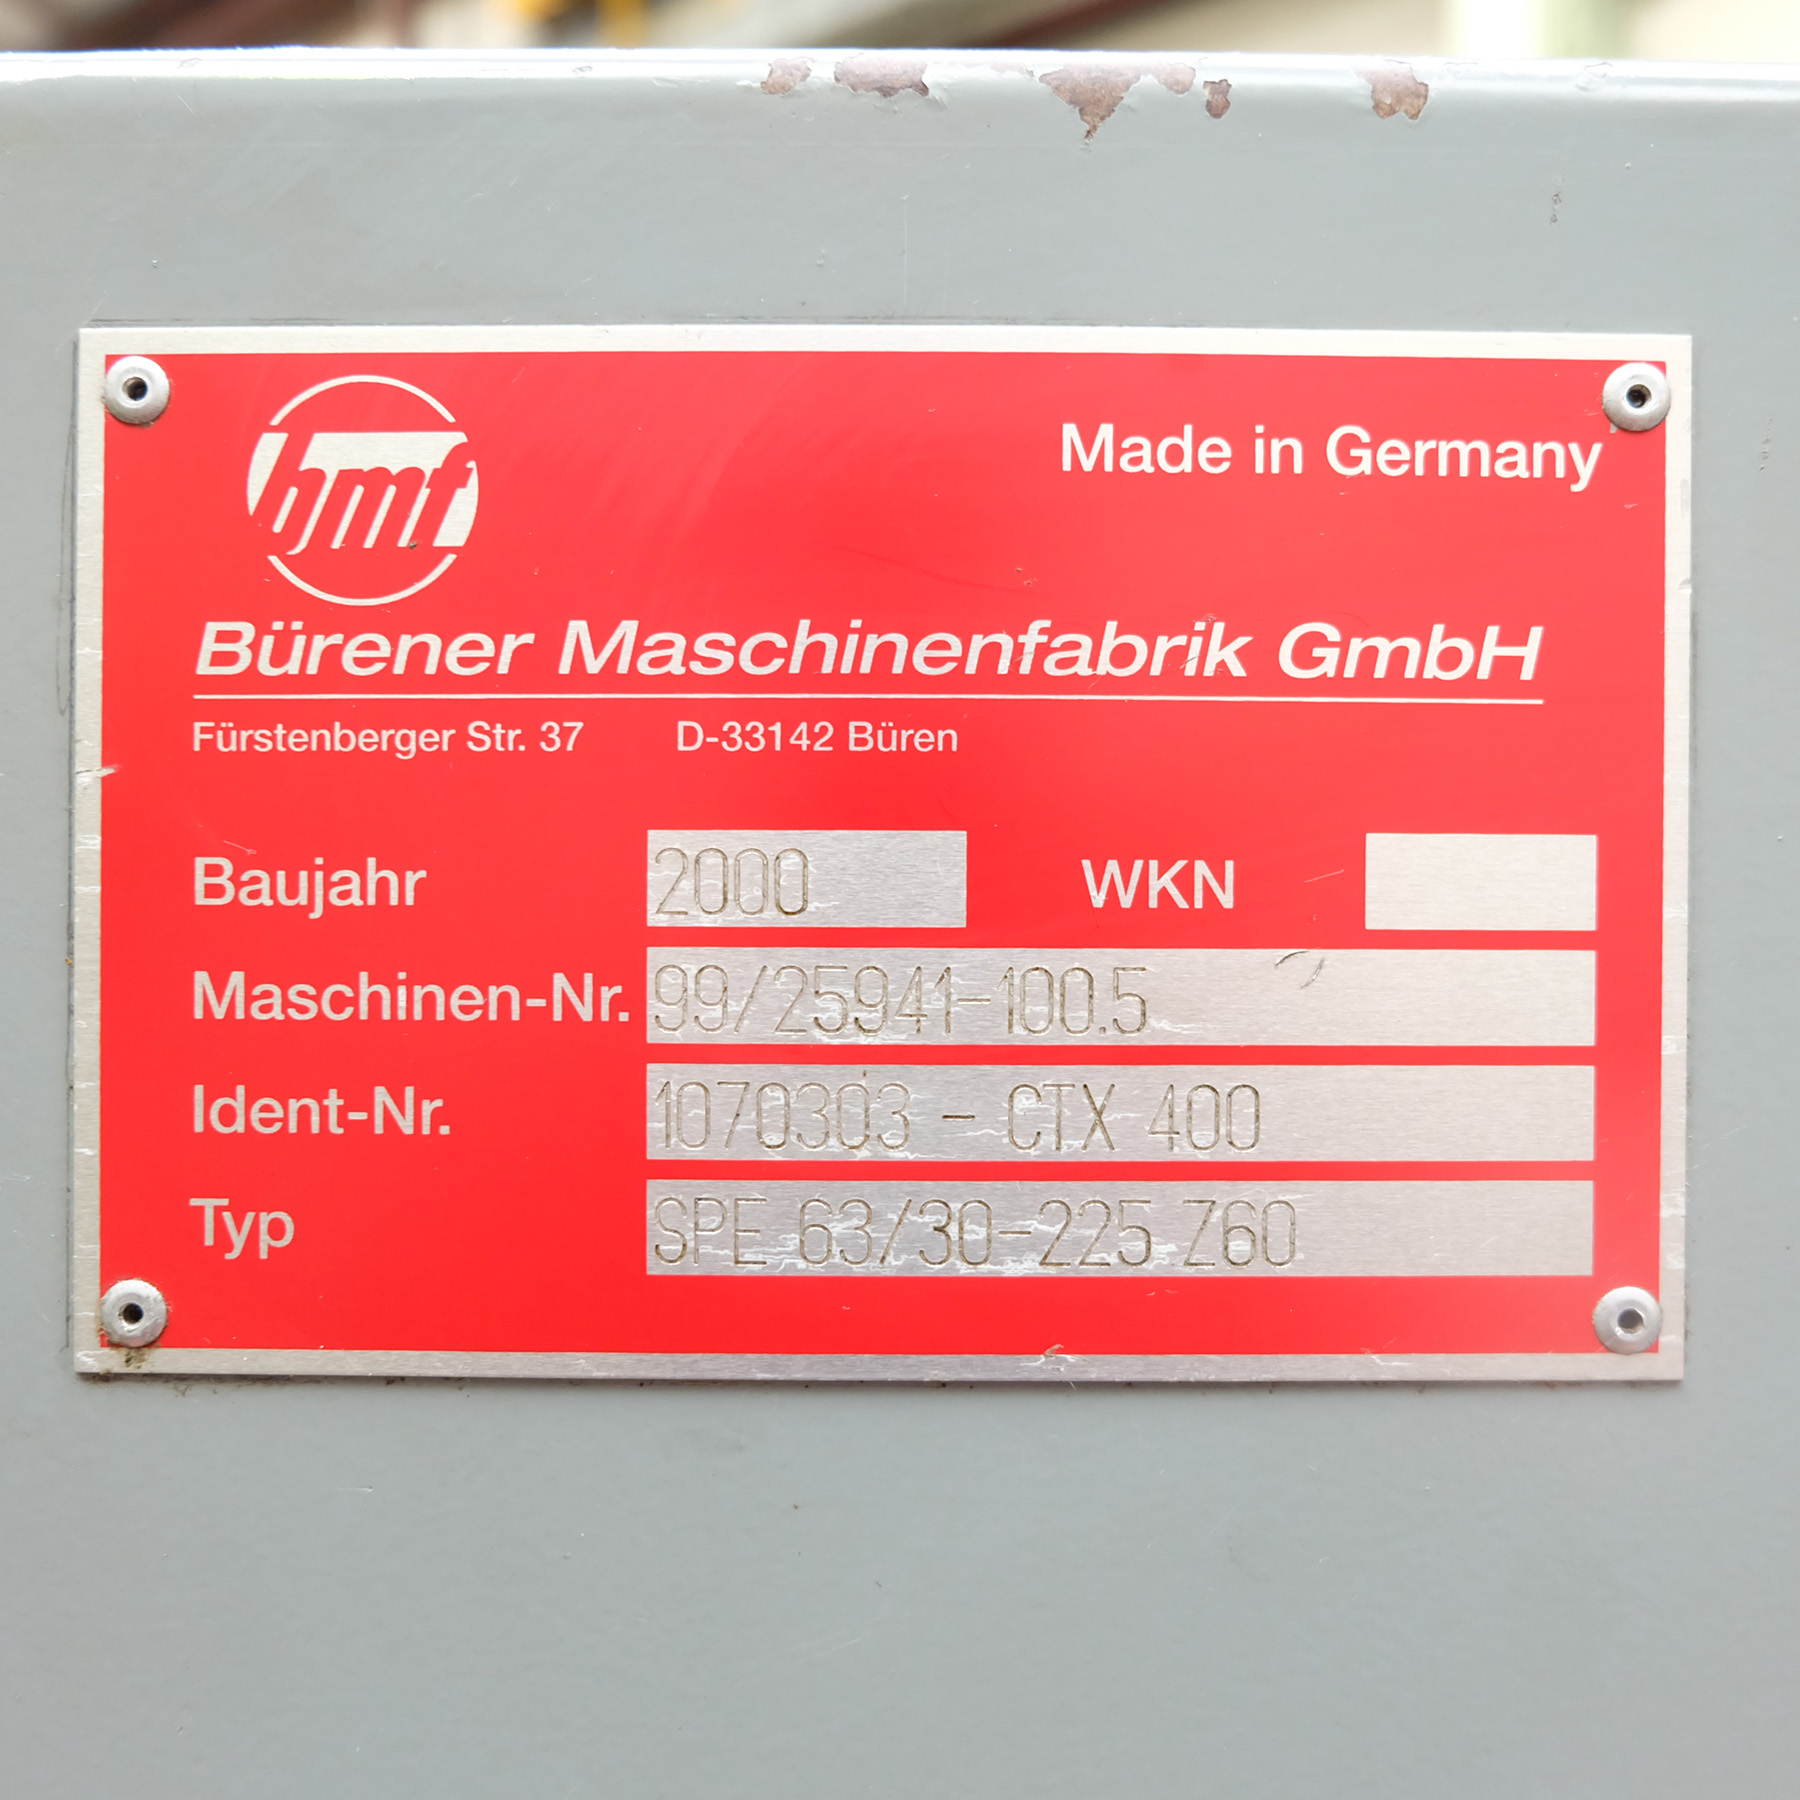 Guildermeister CTX-400 S2. CNC Turning & Milling Centre. With Heidenhain Pilot Control - Image 16 of 17